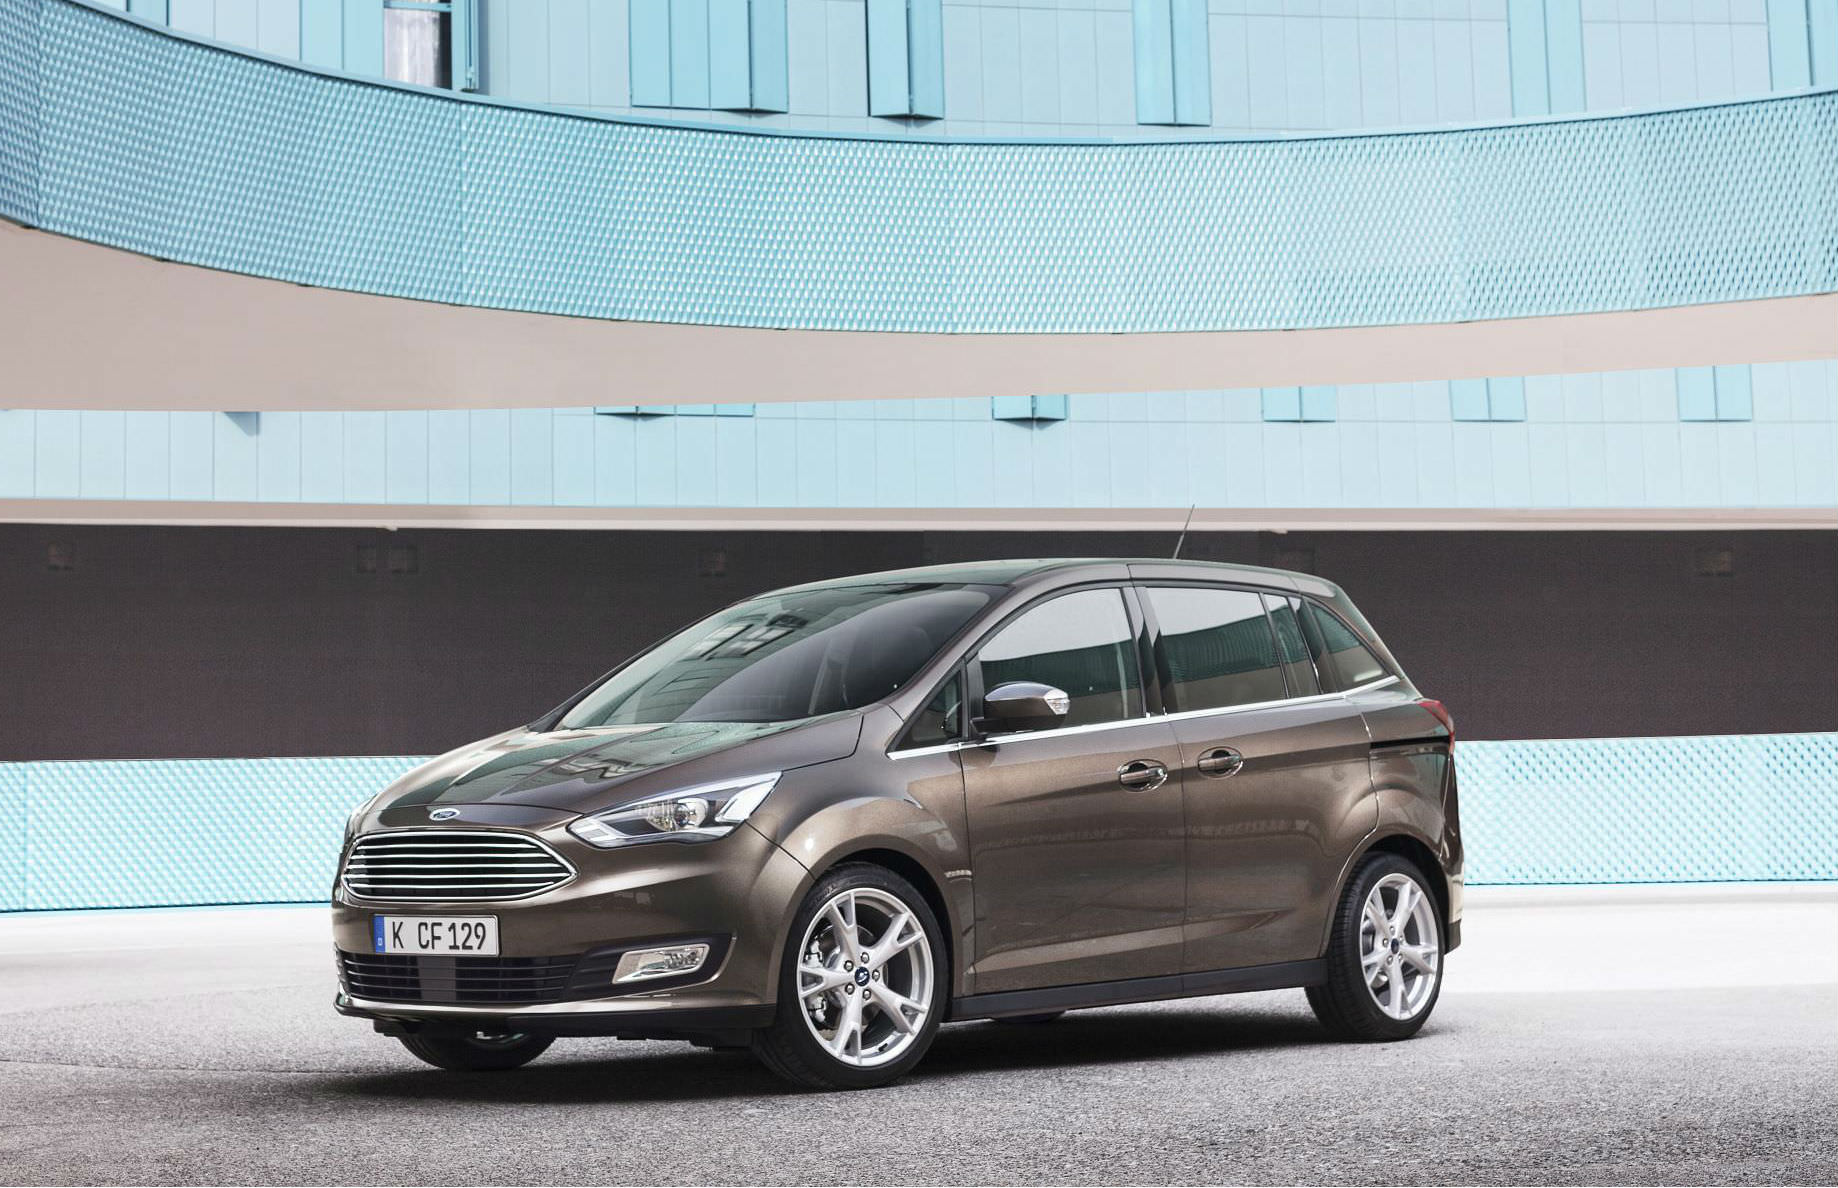 Ford Grand C-Max  the best large family car with sliding door